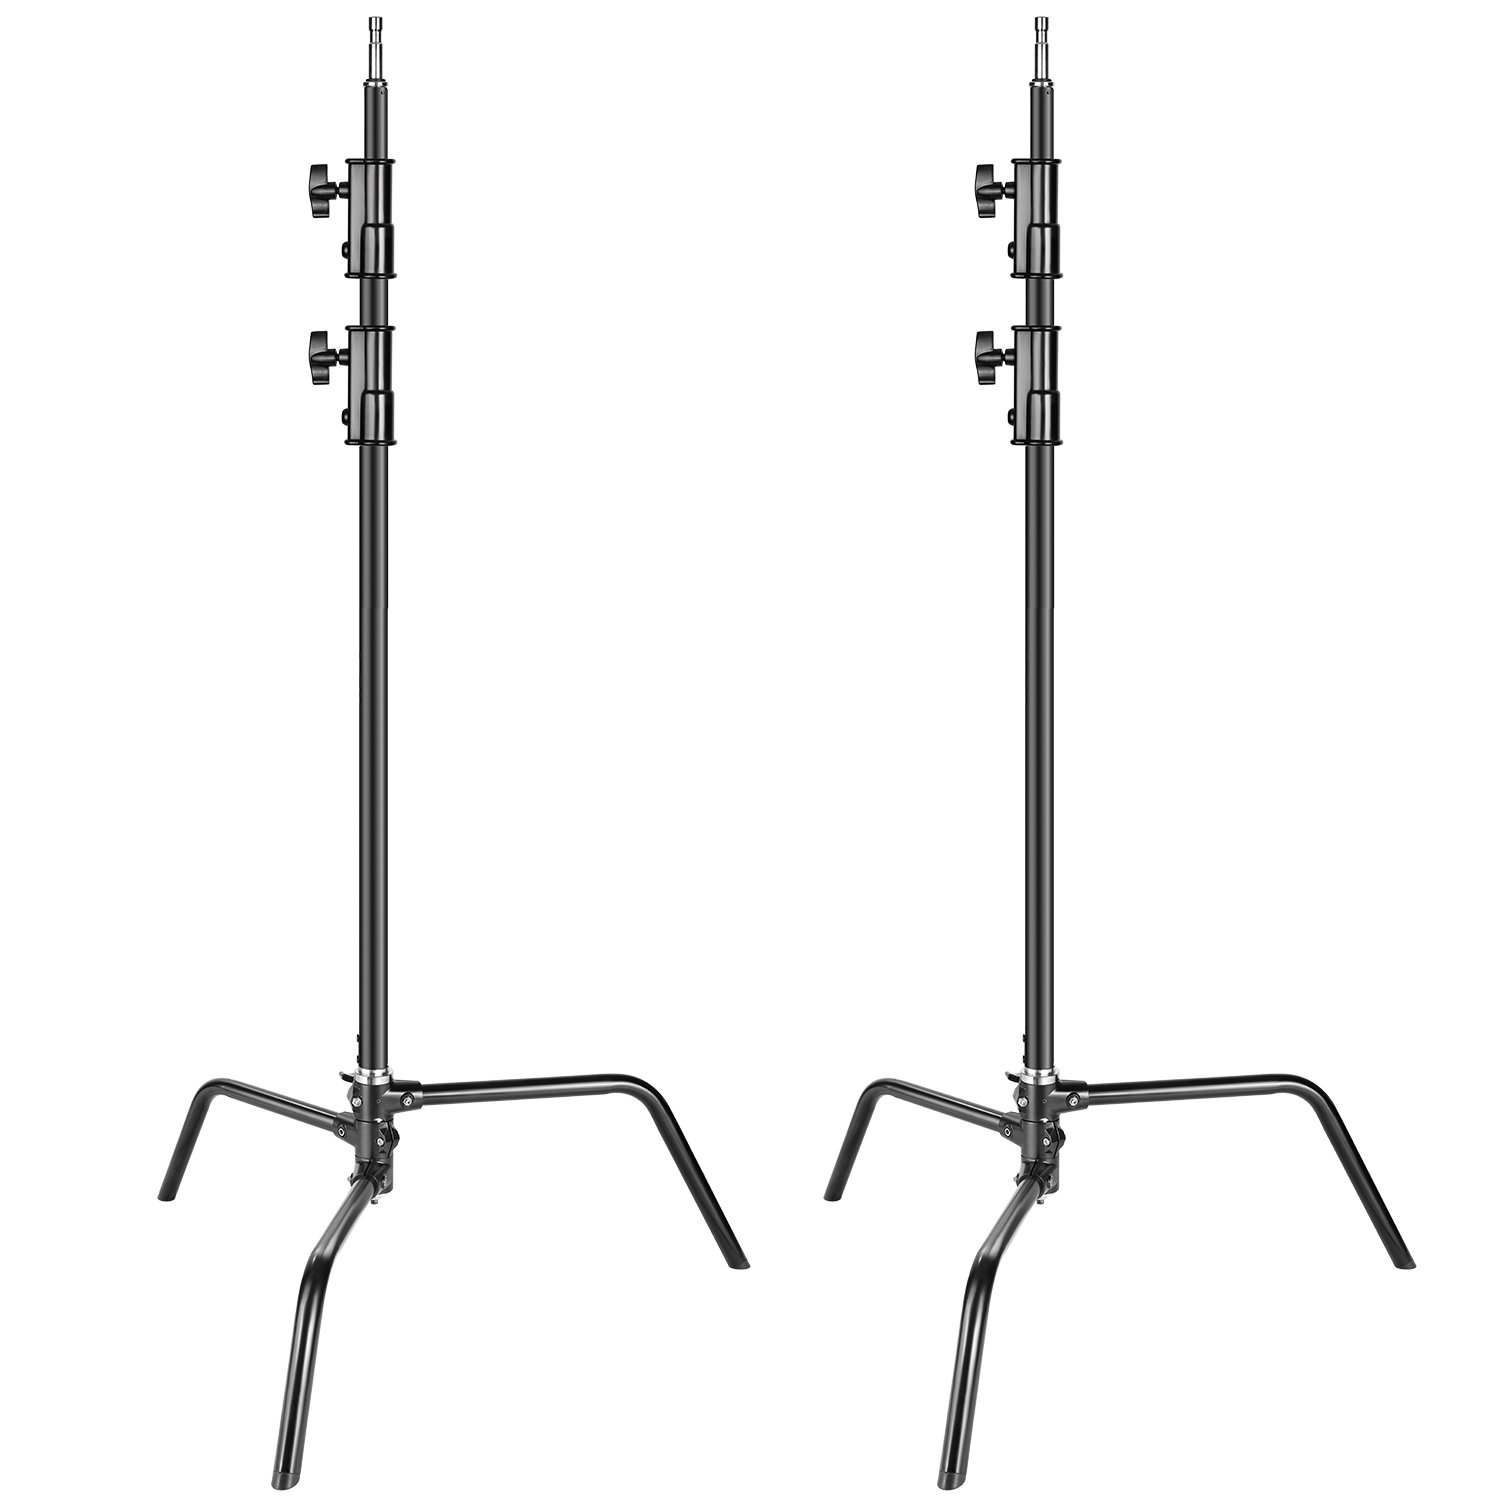 Neewer 2-pack Heavy Duty Aluminum Alloy C-Stand - Adjustable 5-10 feet/1.6-3.2 meters Light Stand for Photography Reflectors, Softboxes, Monolights, Umbrellas (Black) by Neewer